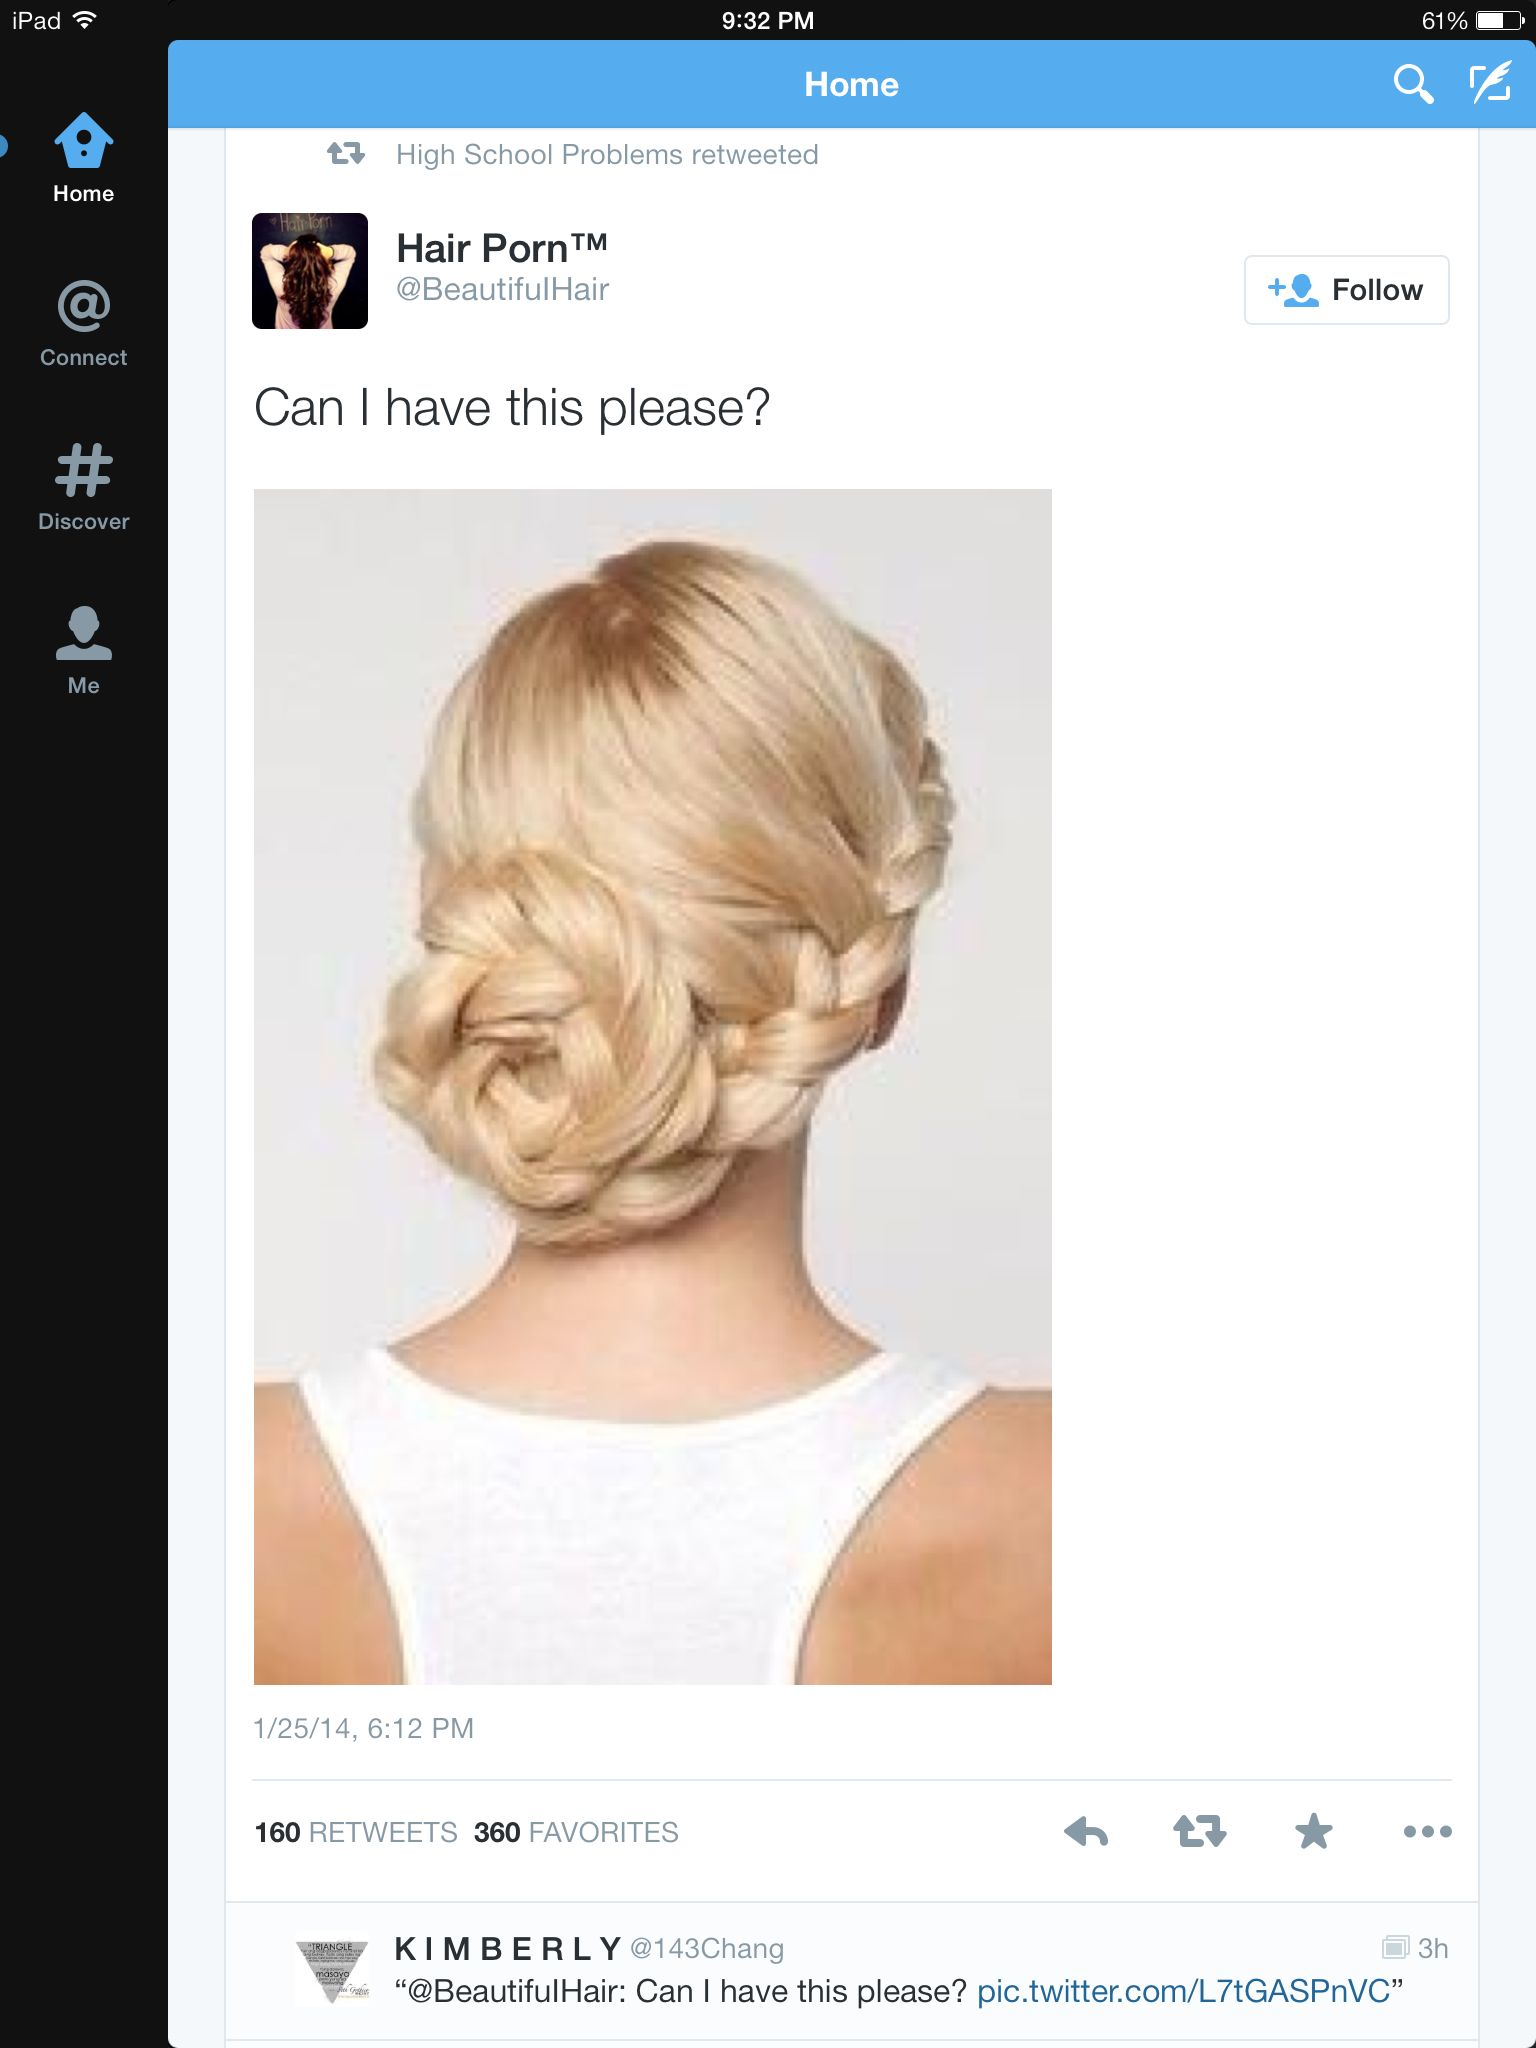 Pin by Kathe 567 on Prom Hair Ideas | Pinterest | Prom hair